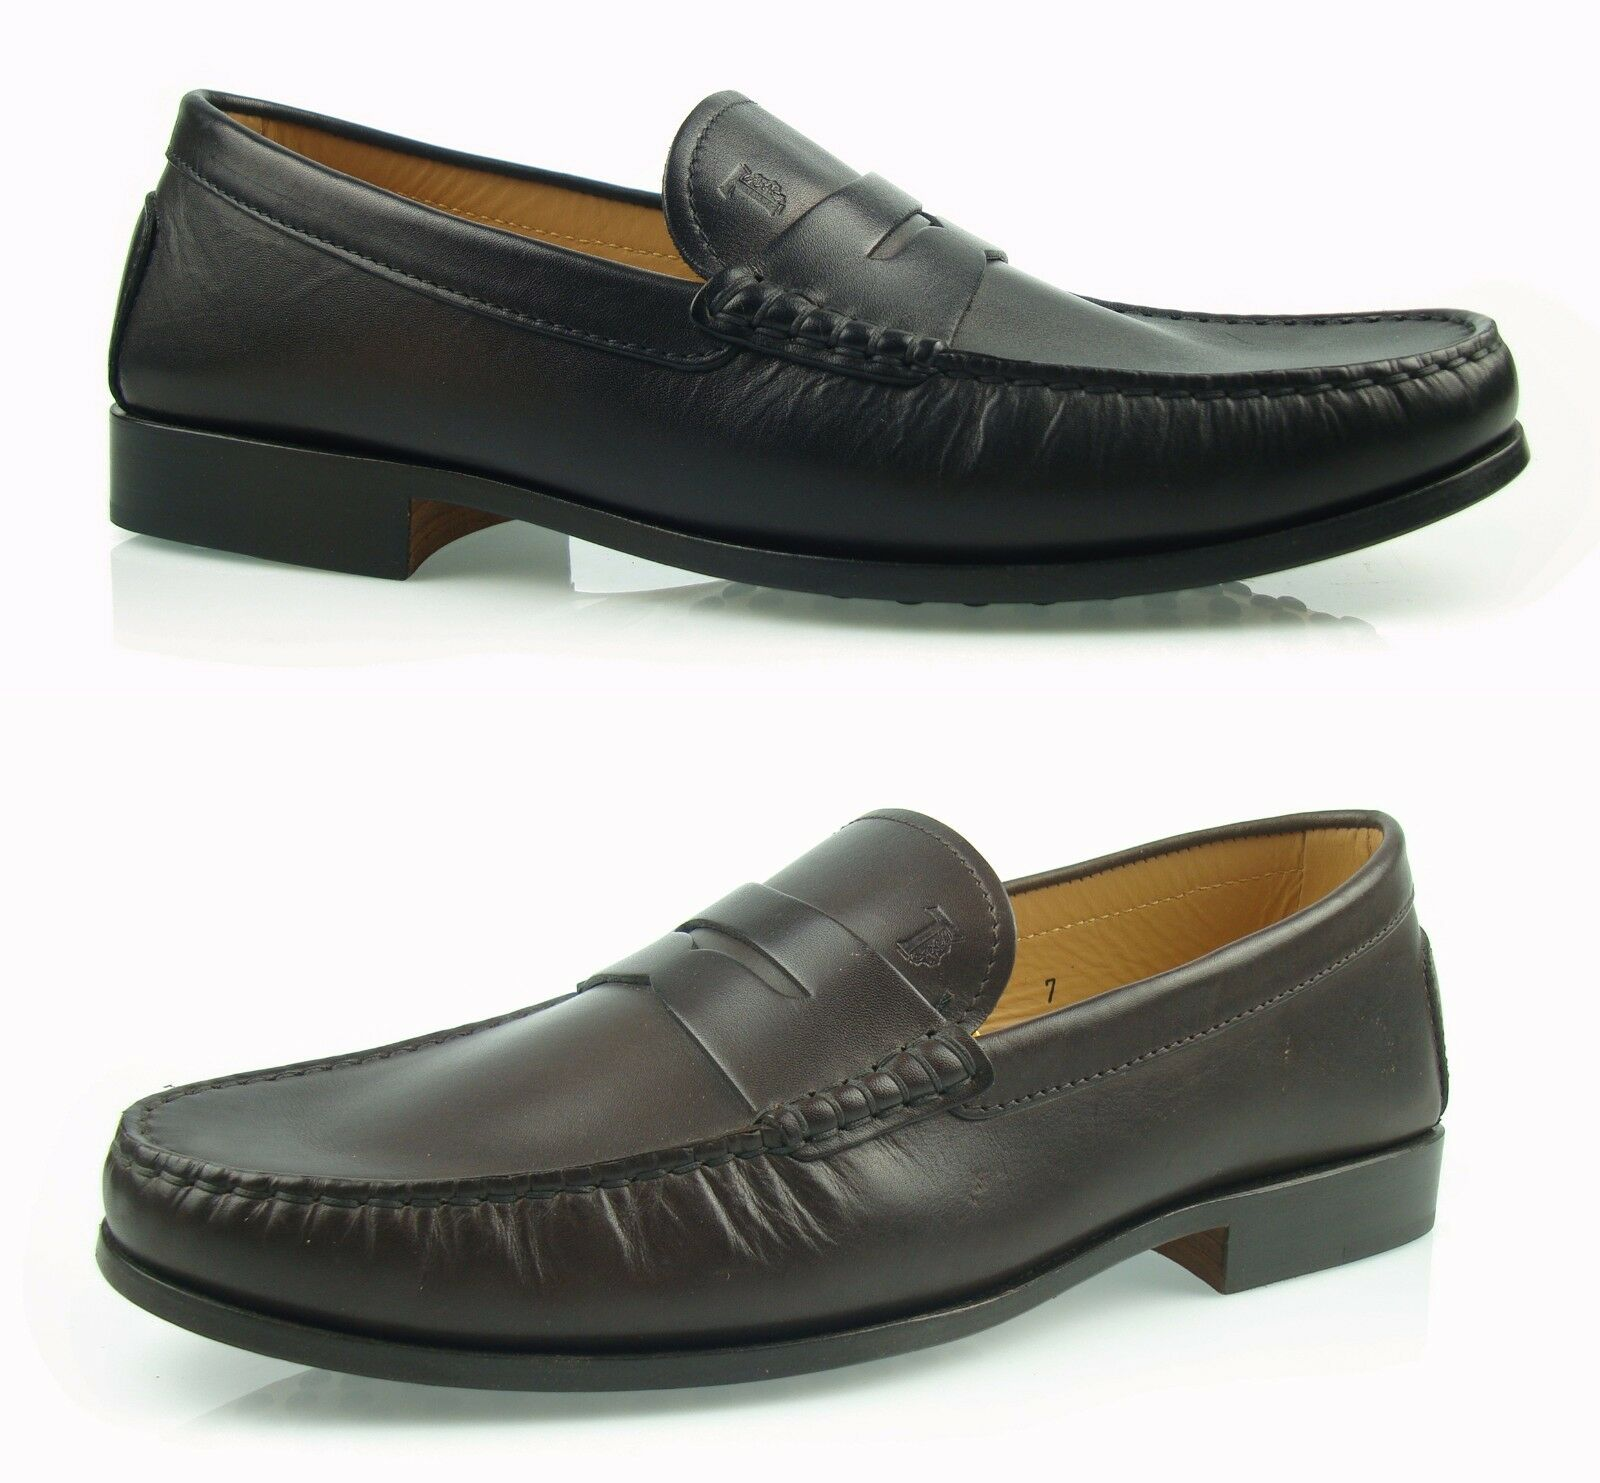 Tod's MEN'S MOCCASINS NEW CITTA' FORMALE shoes loafers  100% AUTHENTICH mg1